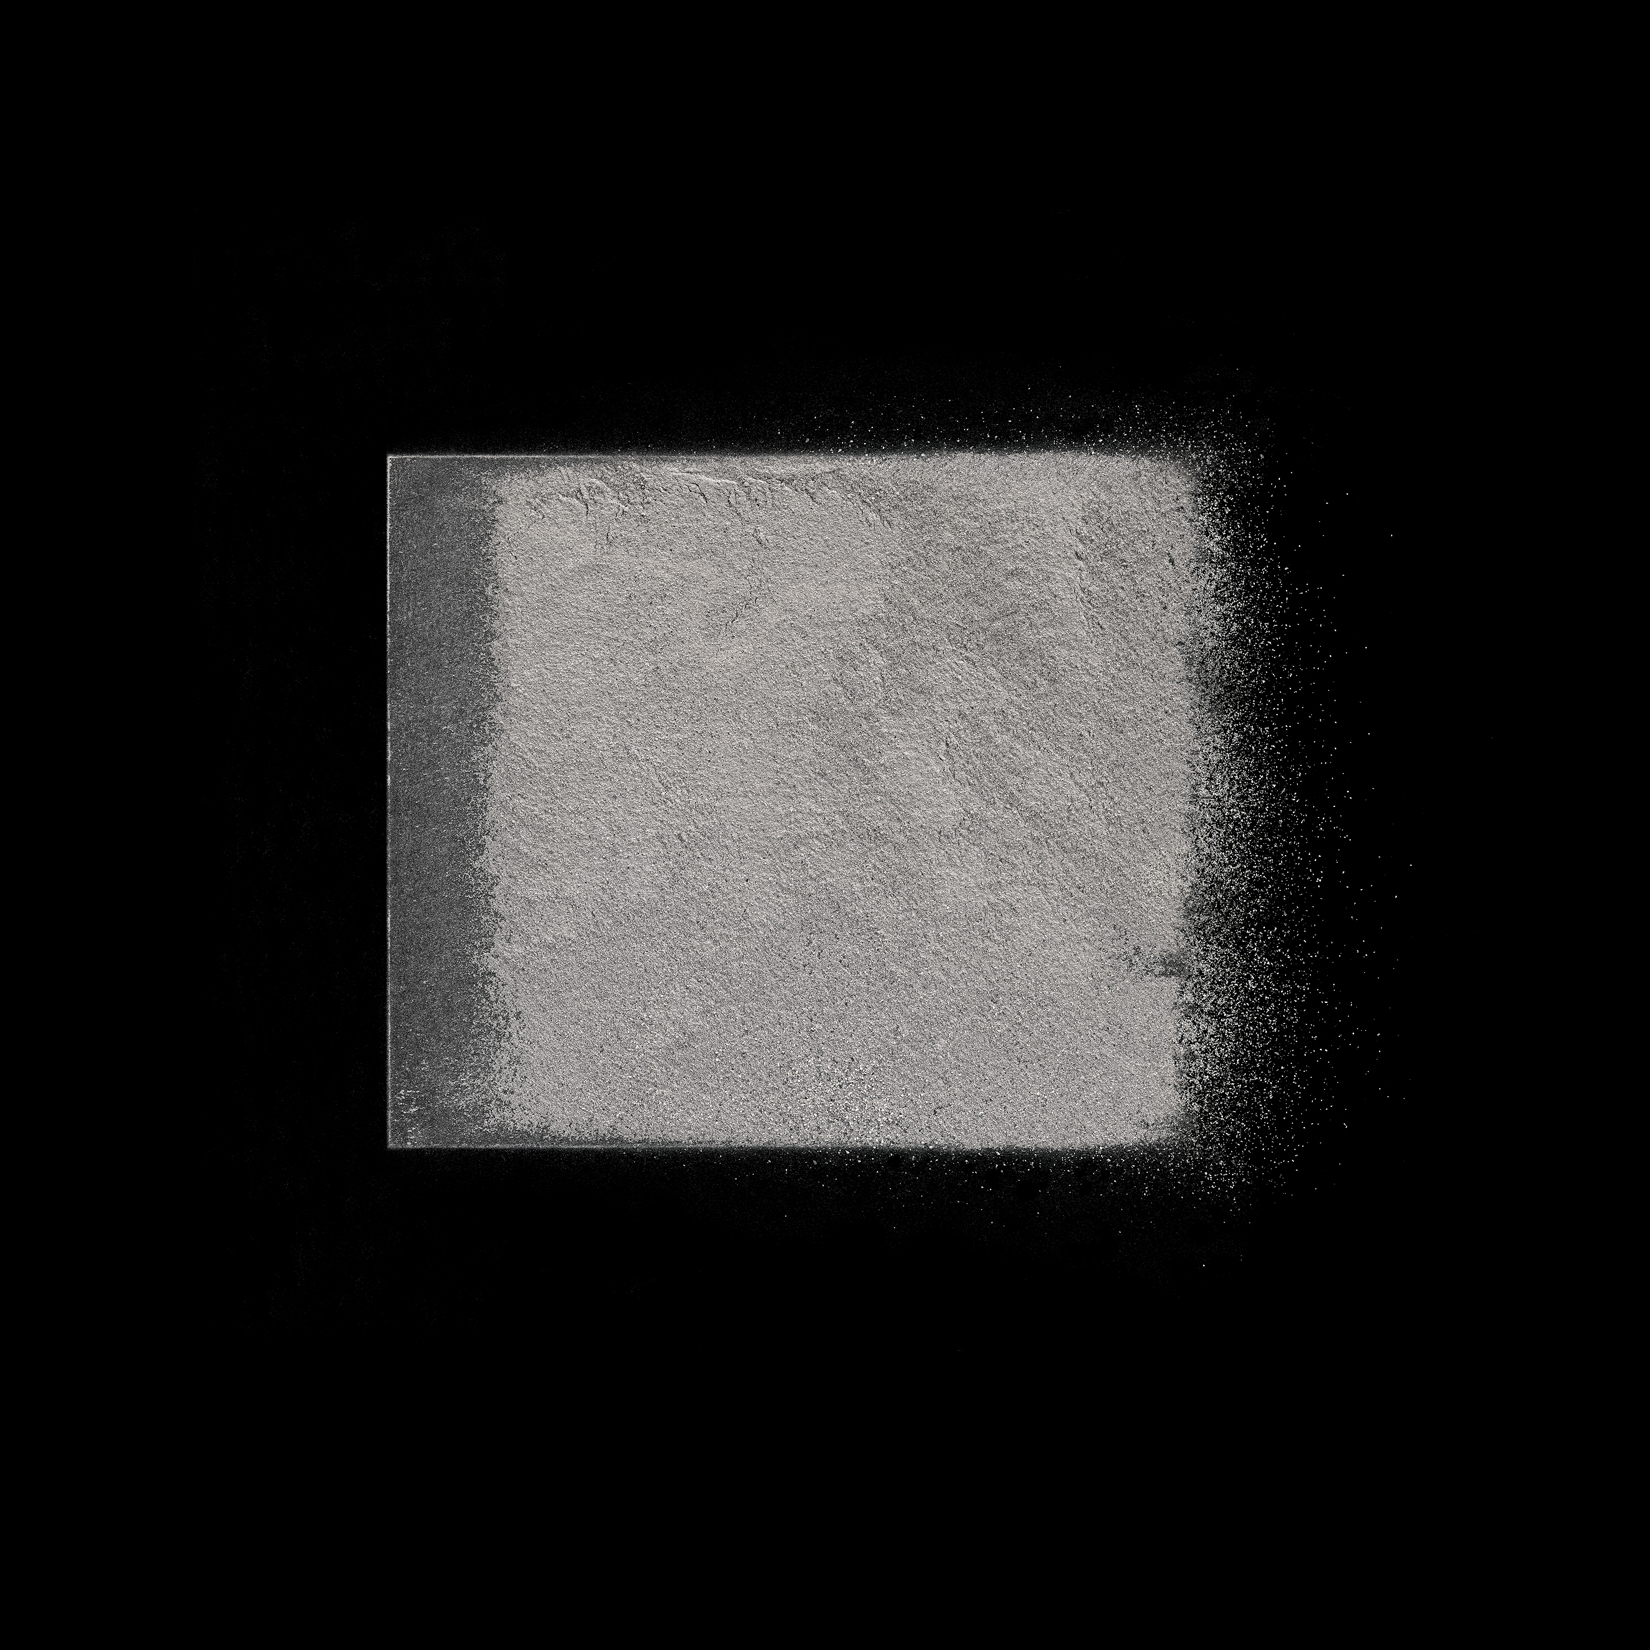 After Malevich: The Moment of Dissolution